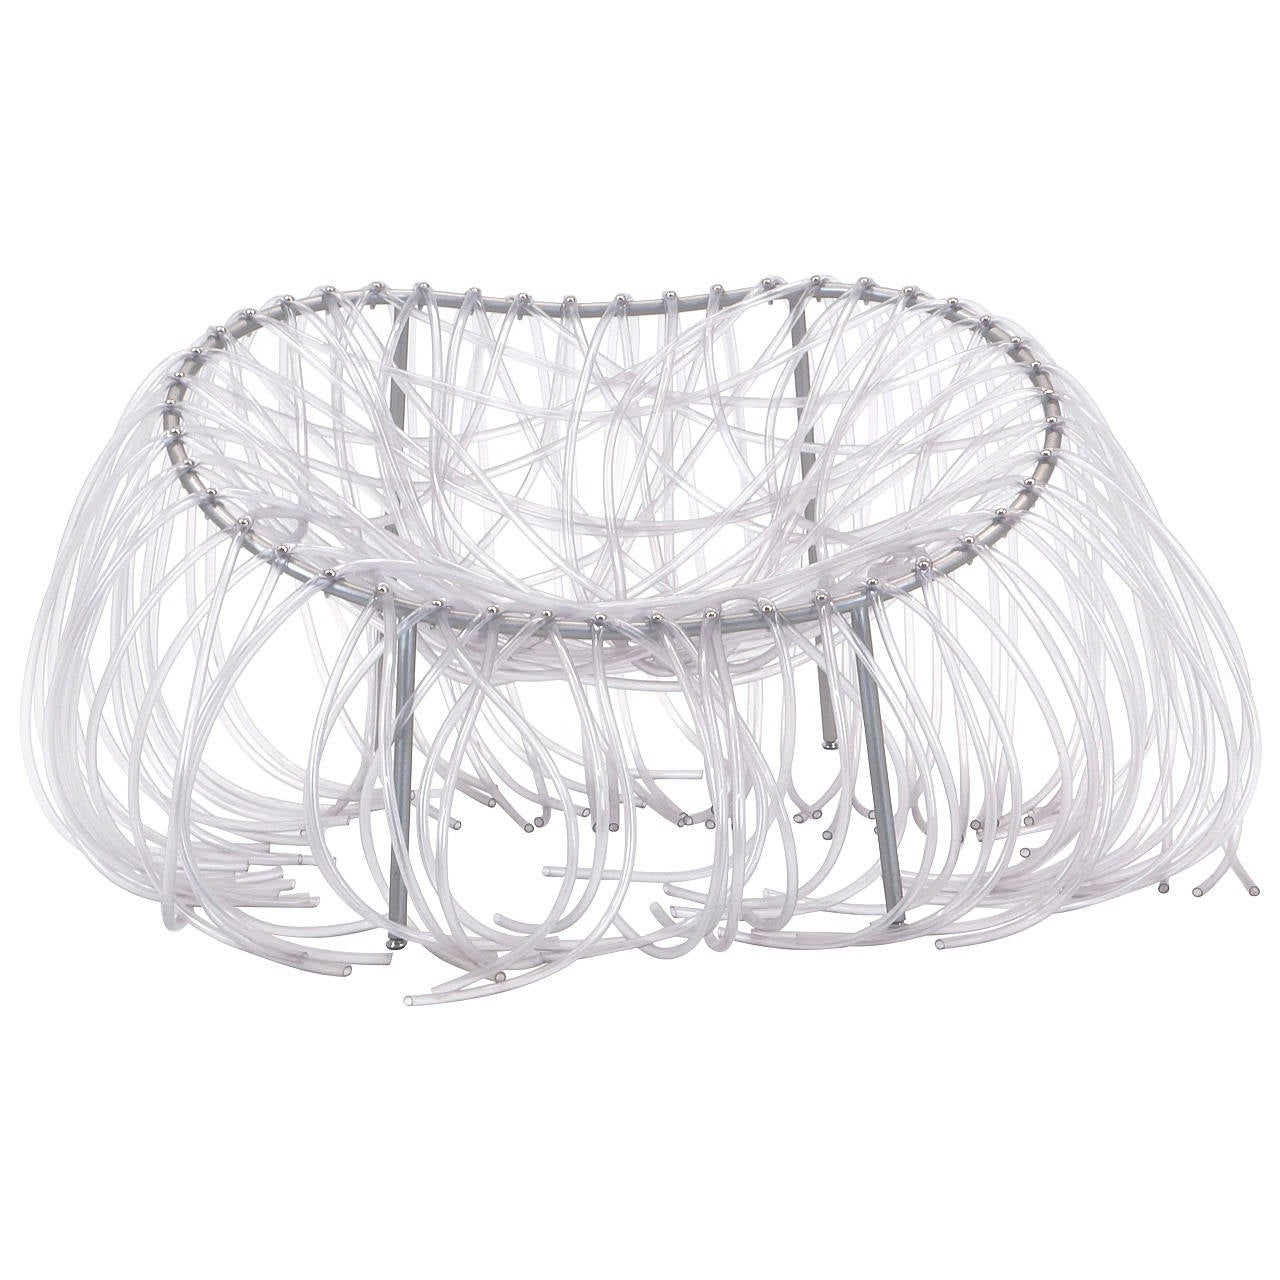 Fernando and Humberto Campana (Campana Brothers) Anemone Chair